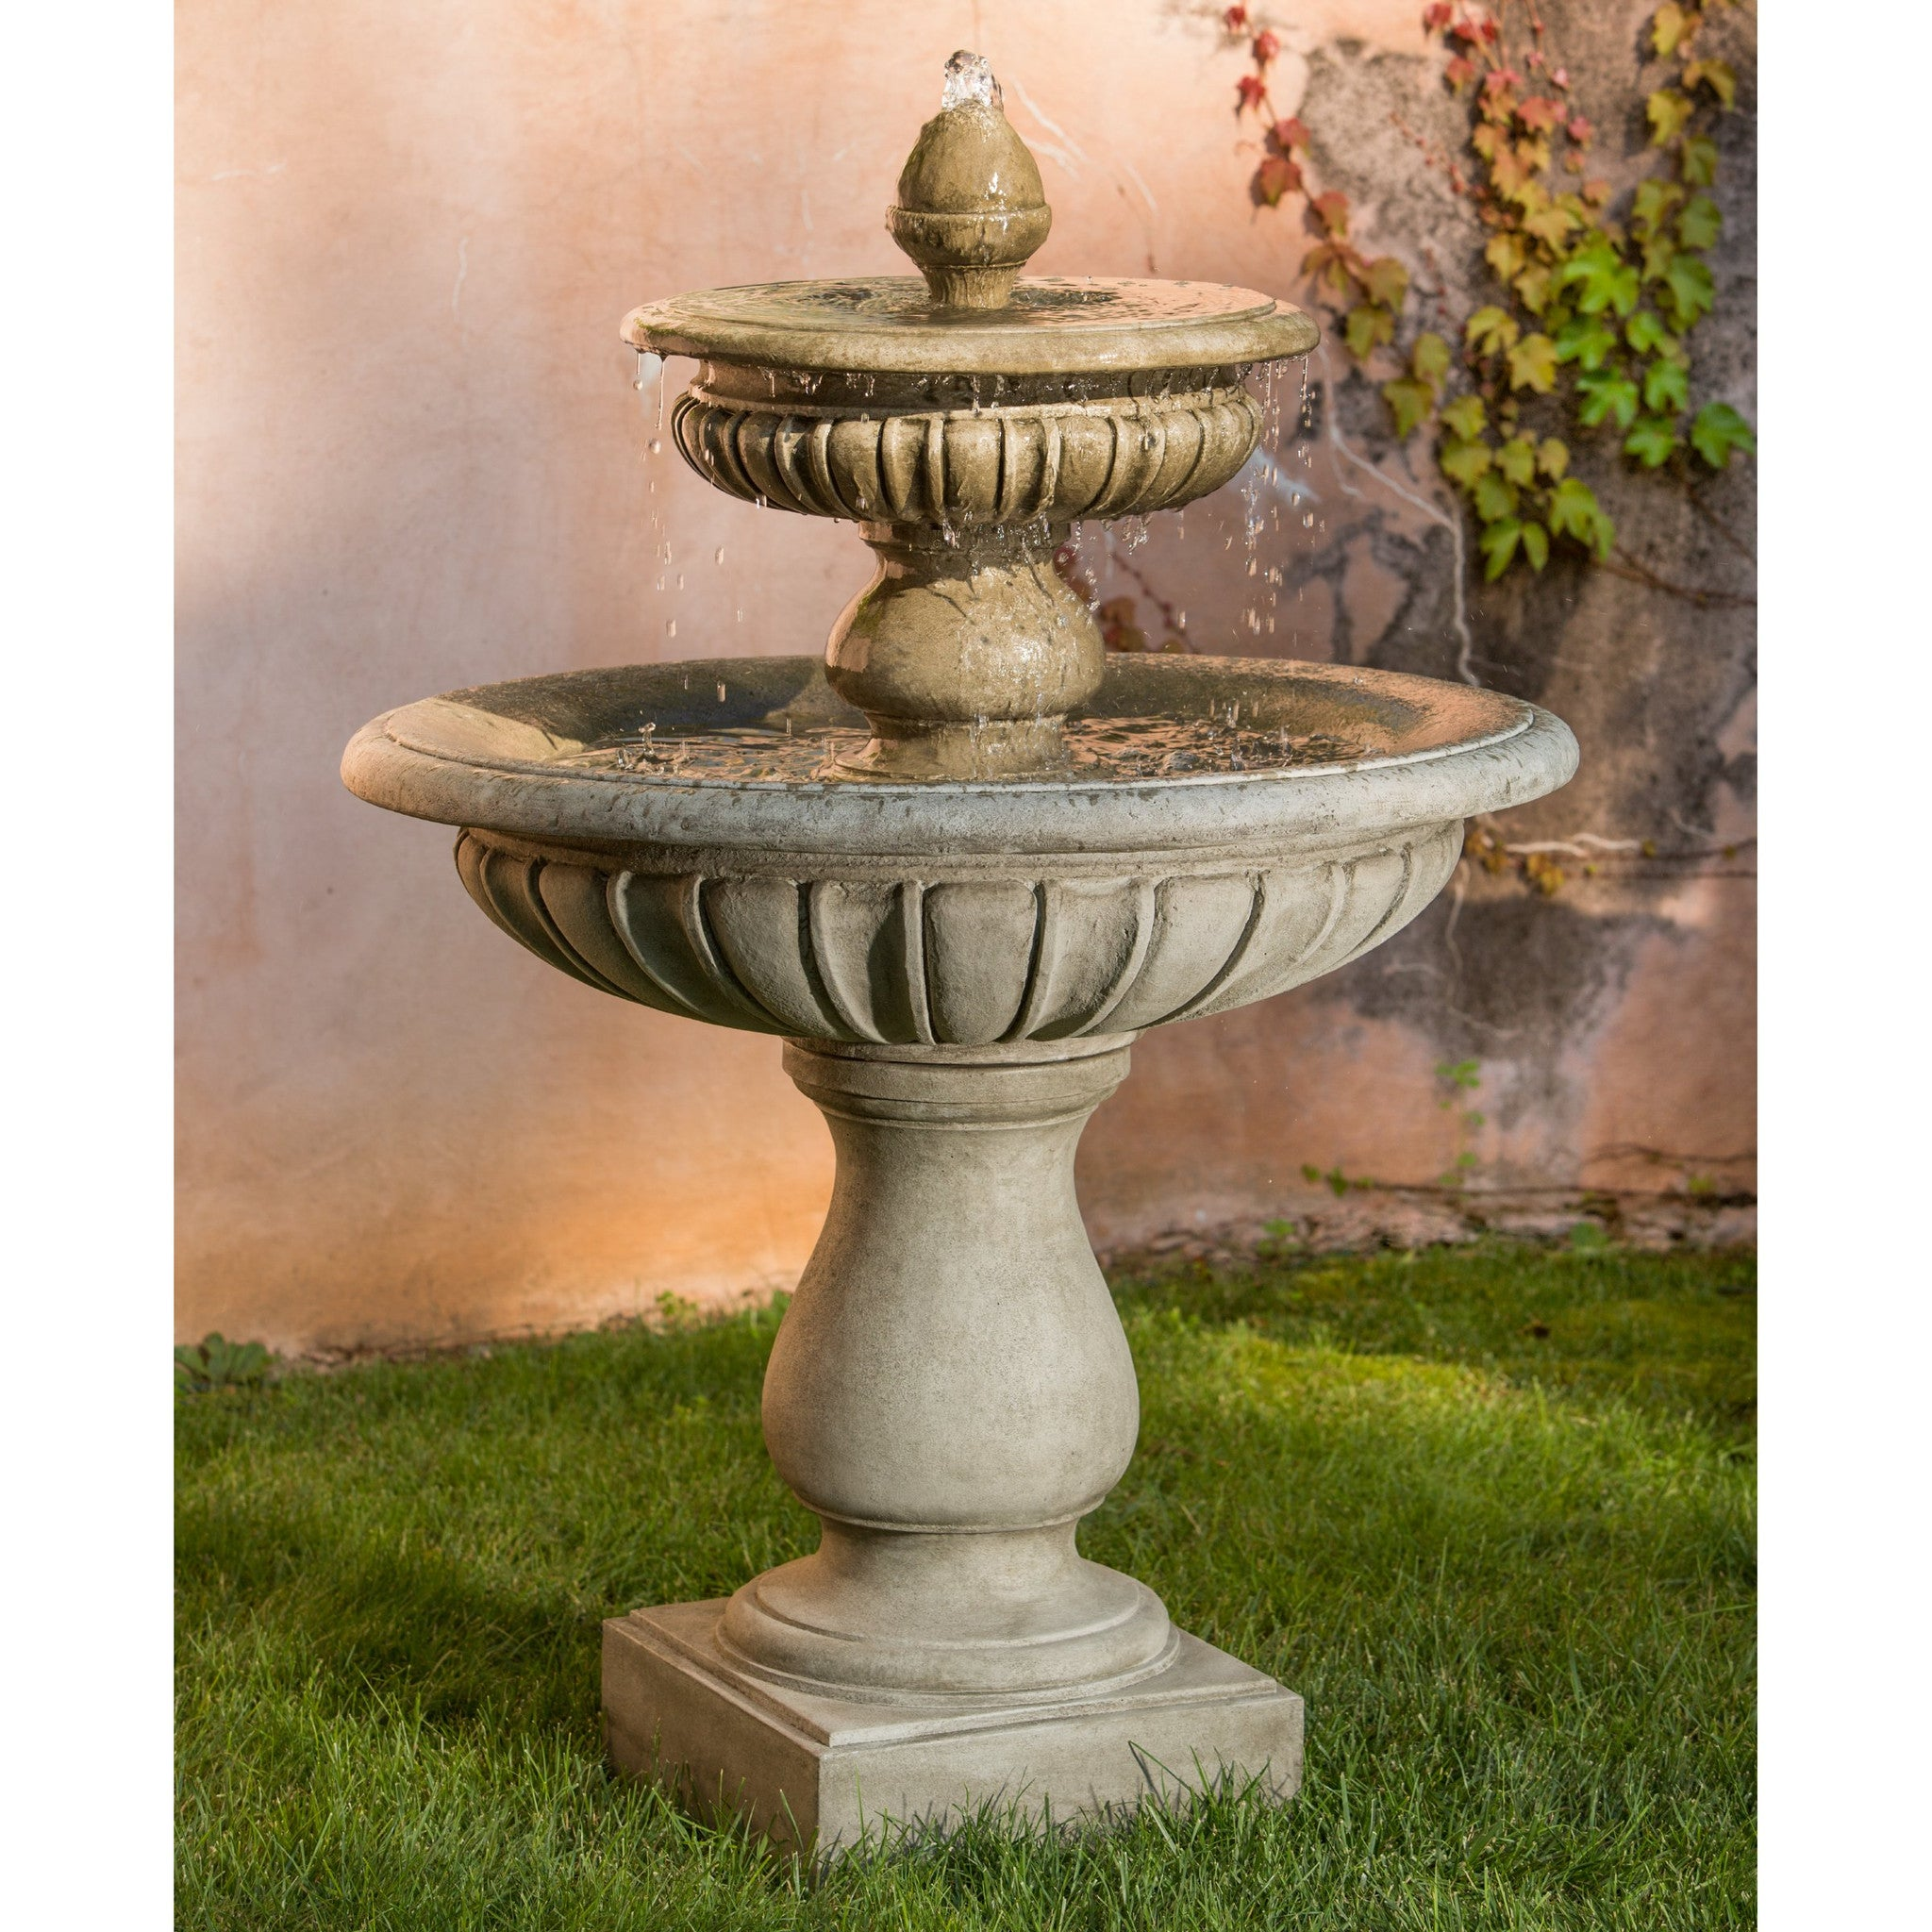 Longvue Garden Water Fountain - Soothing Walls